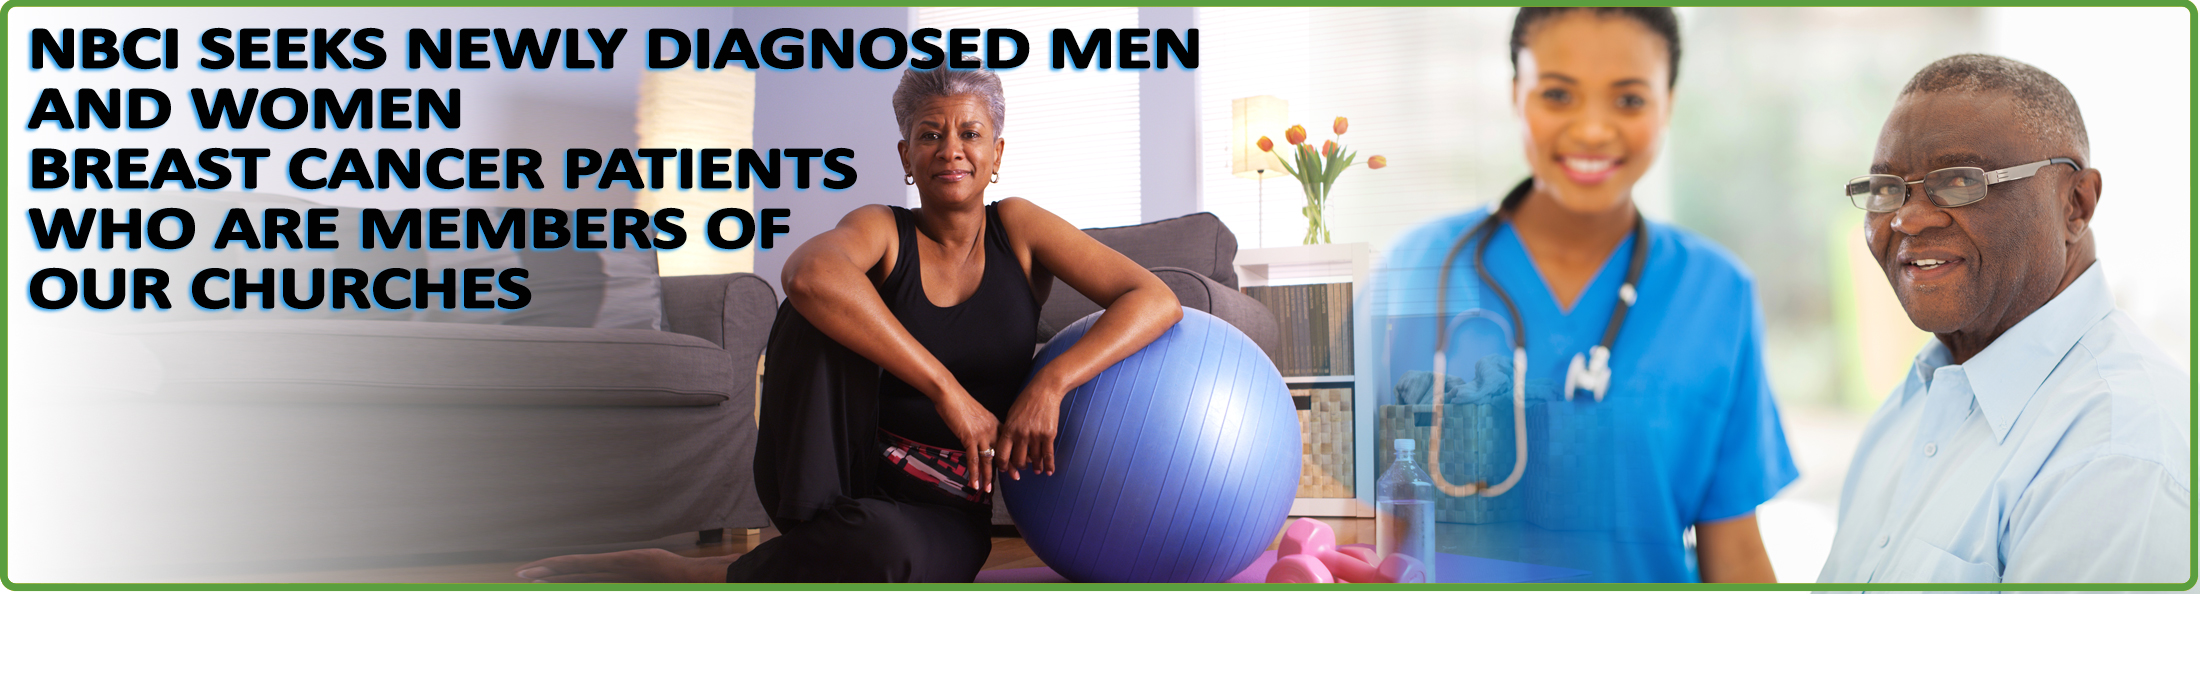 NBCI Seeks Newly Diagnosed Men and Women Breast Cancer Patients Who Are Members of Our Churches